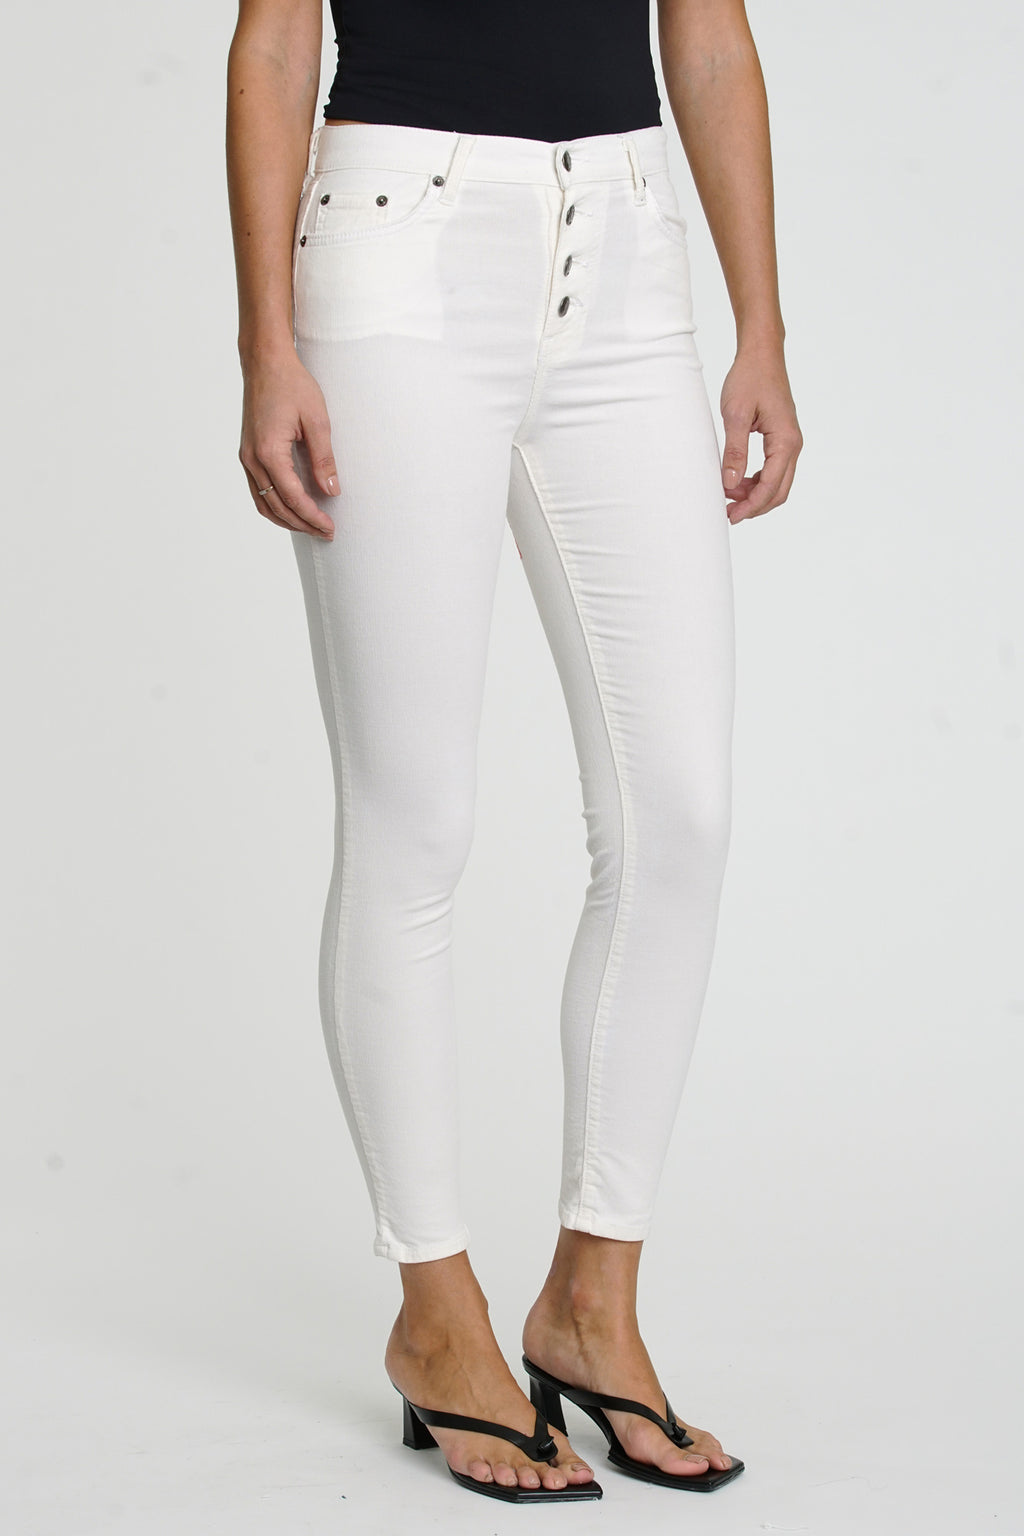 Aline Exposed Button High Rise Skinny - Winter White